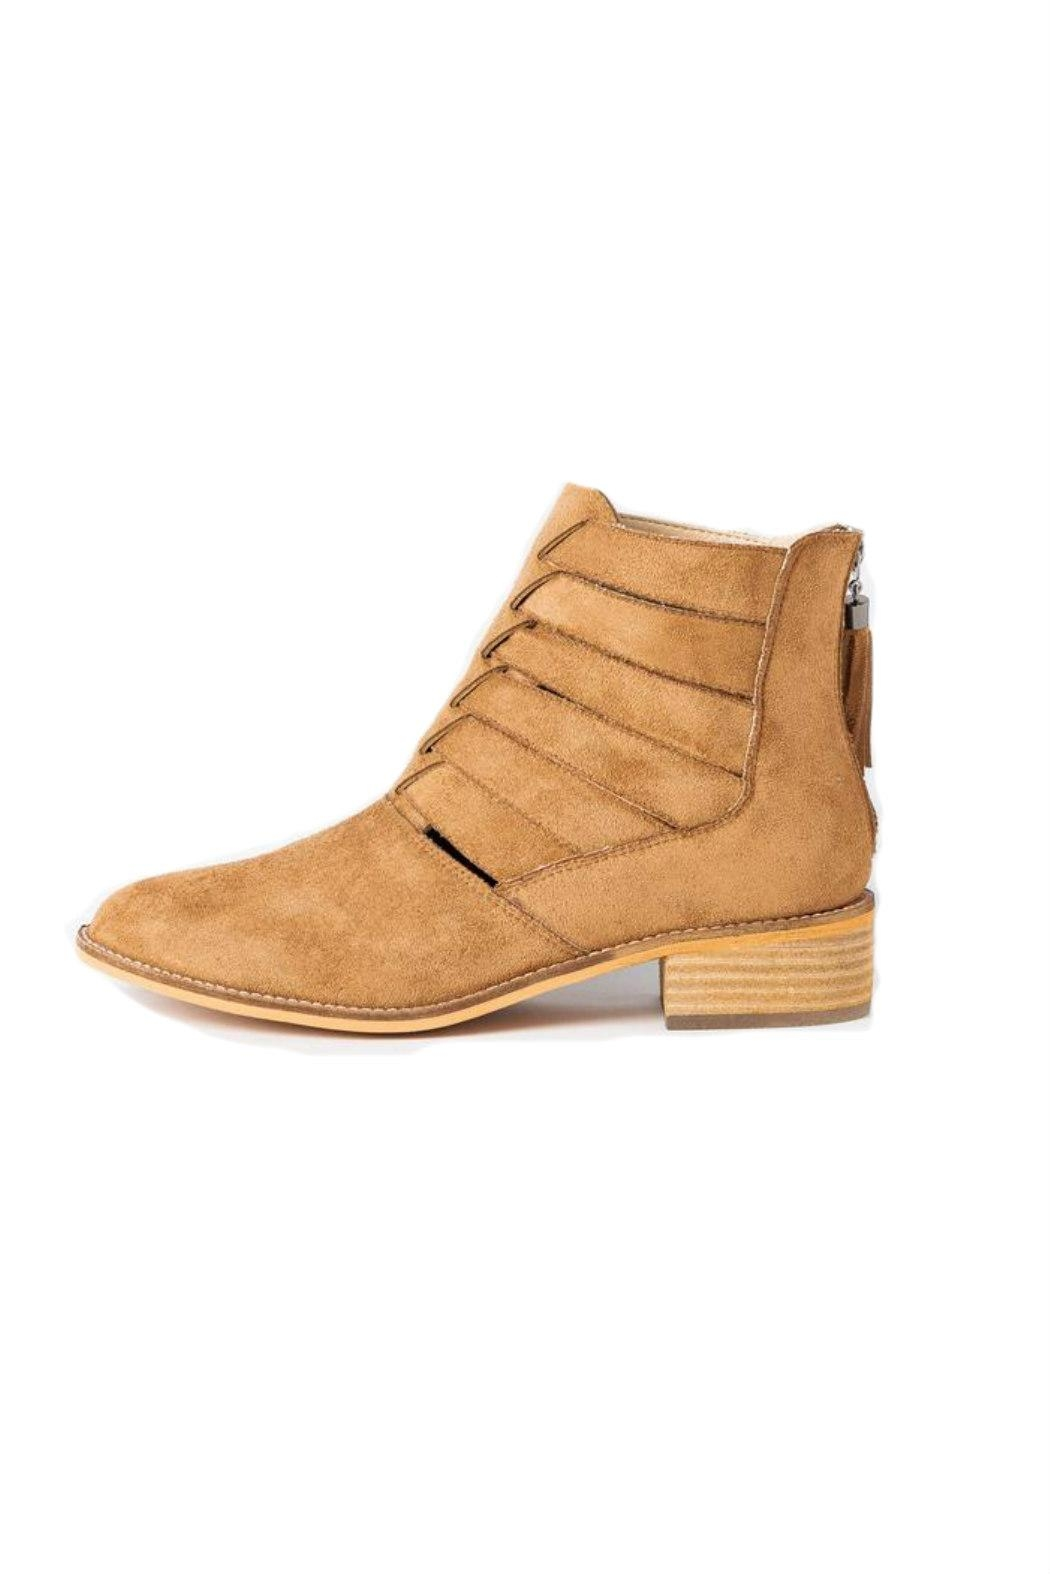 Arider Girl Chloe Faux-Suede Bootie - Main Image